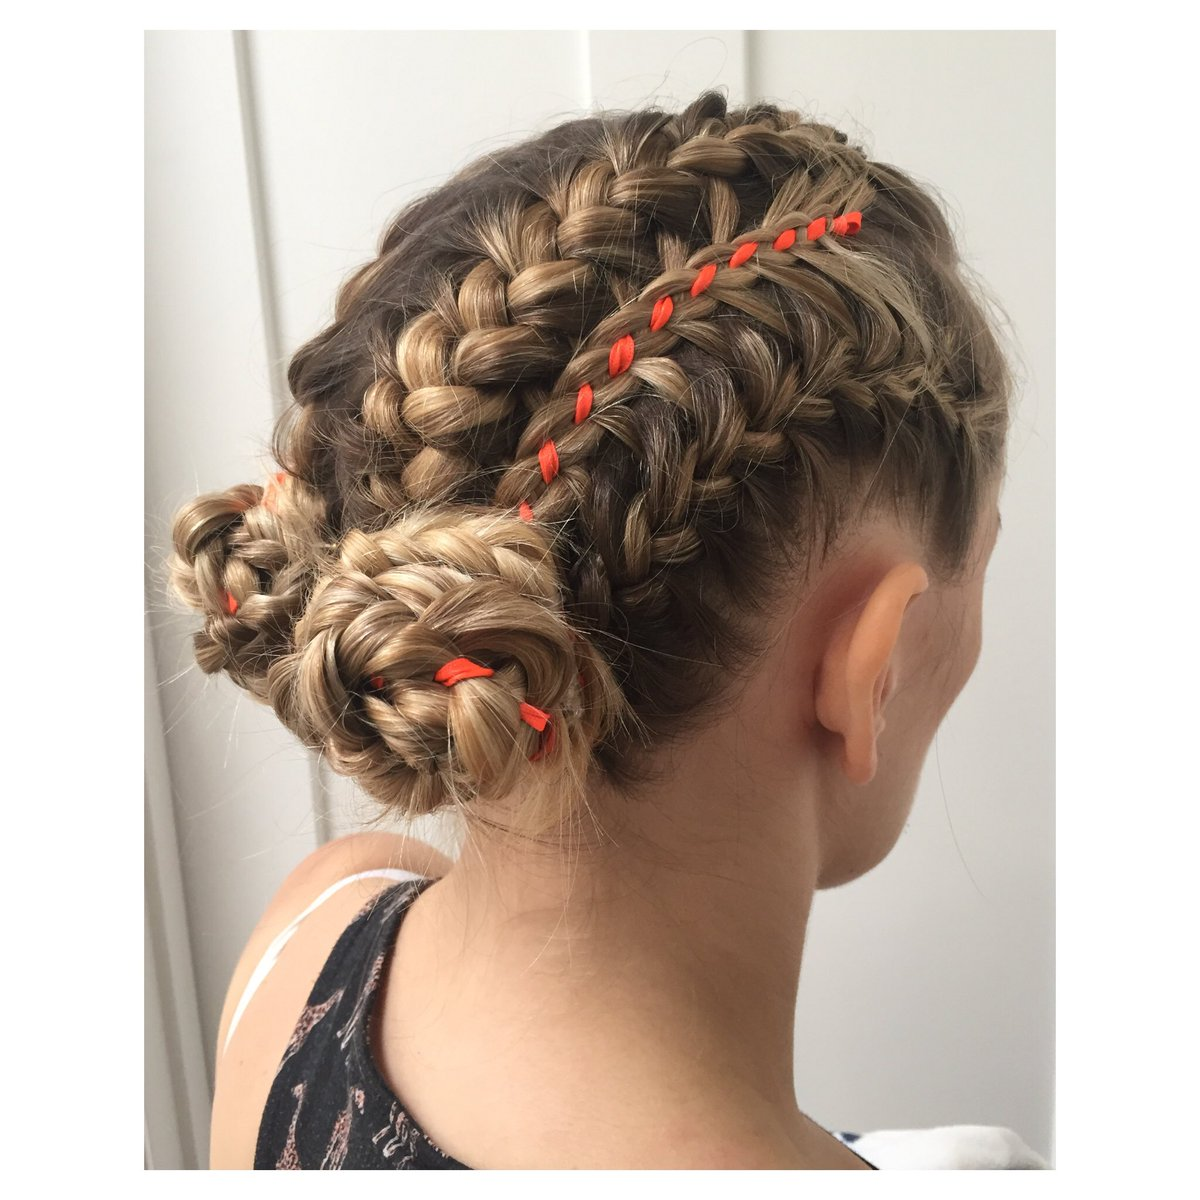 Joel Benjamin On Twitter French Braids With Feathered Accents